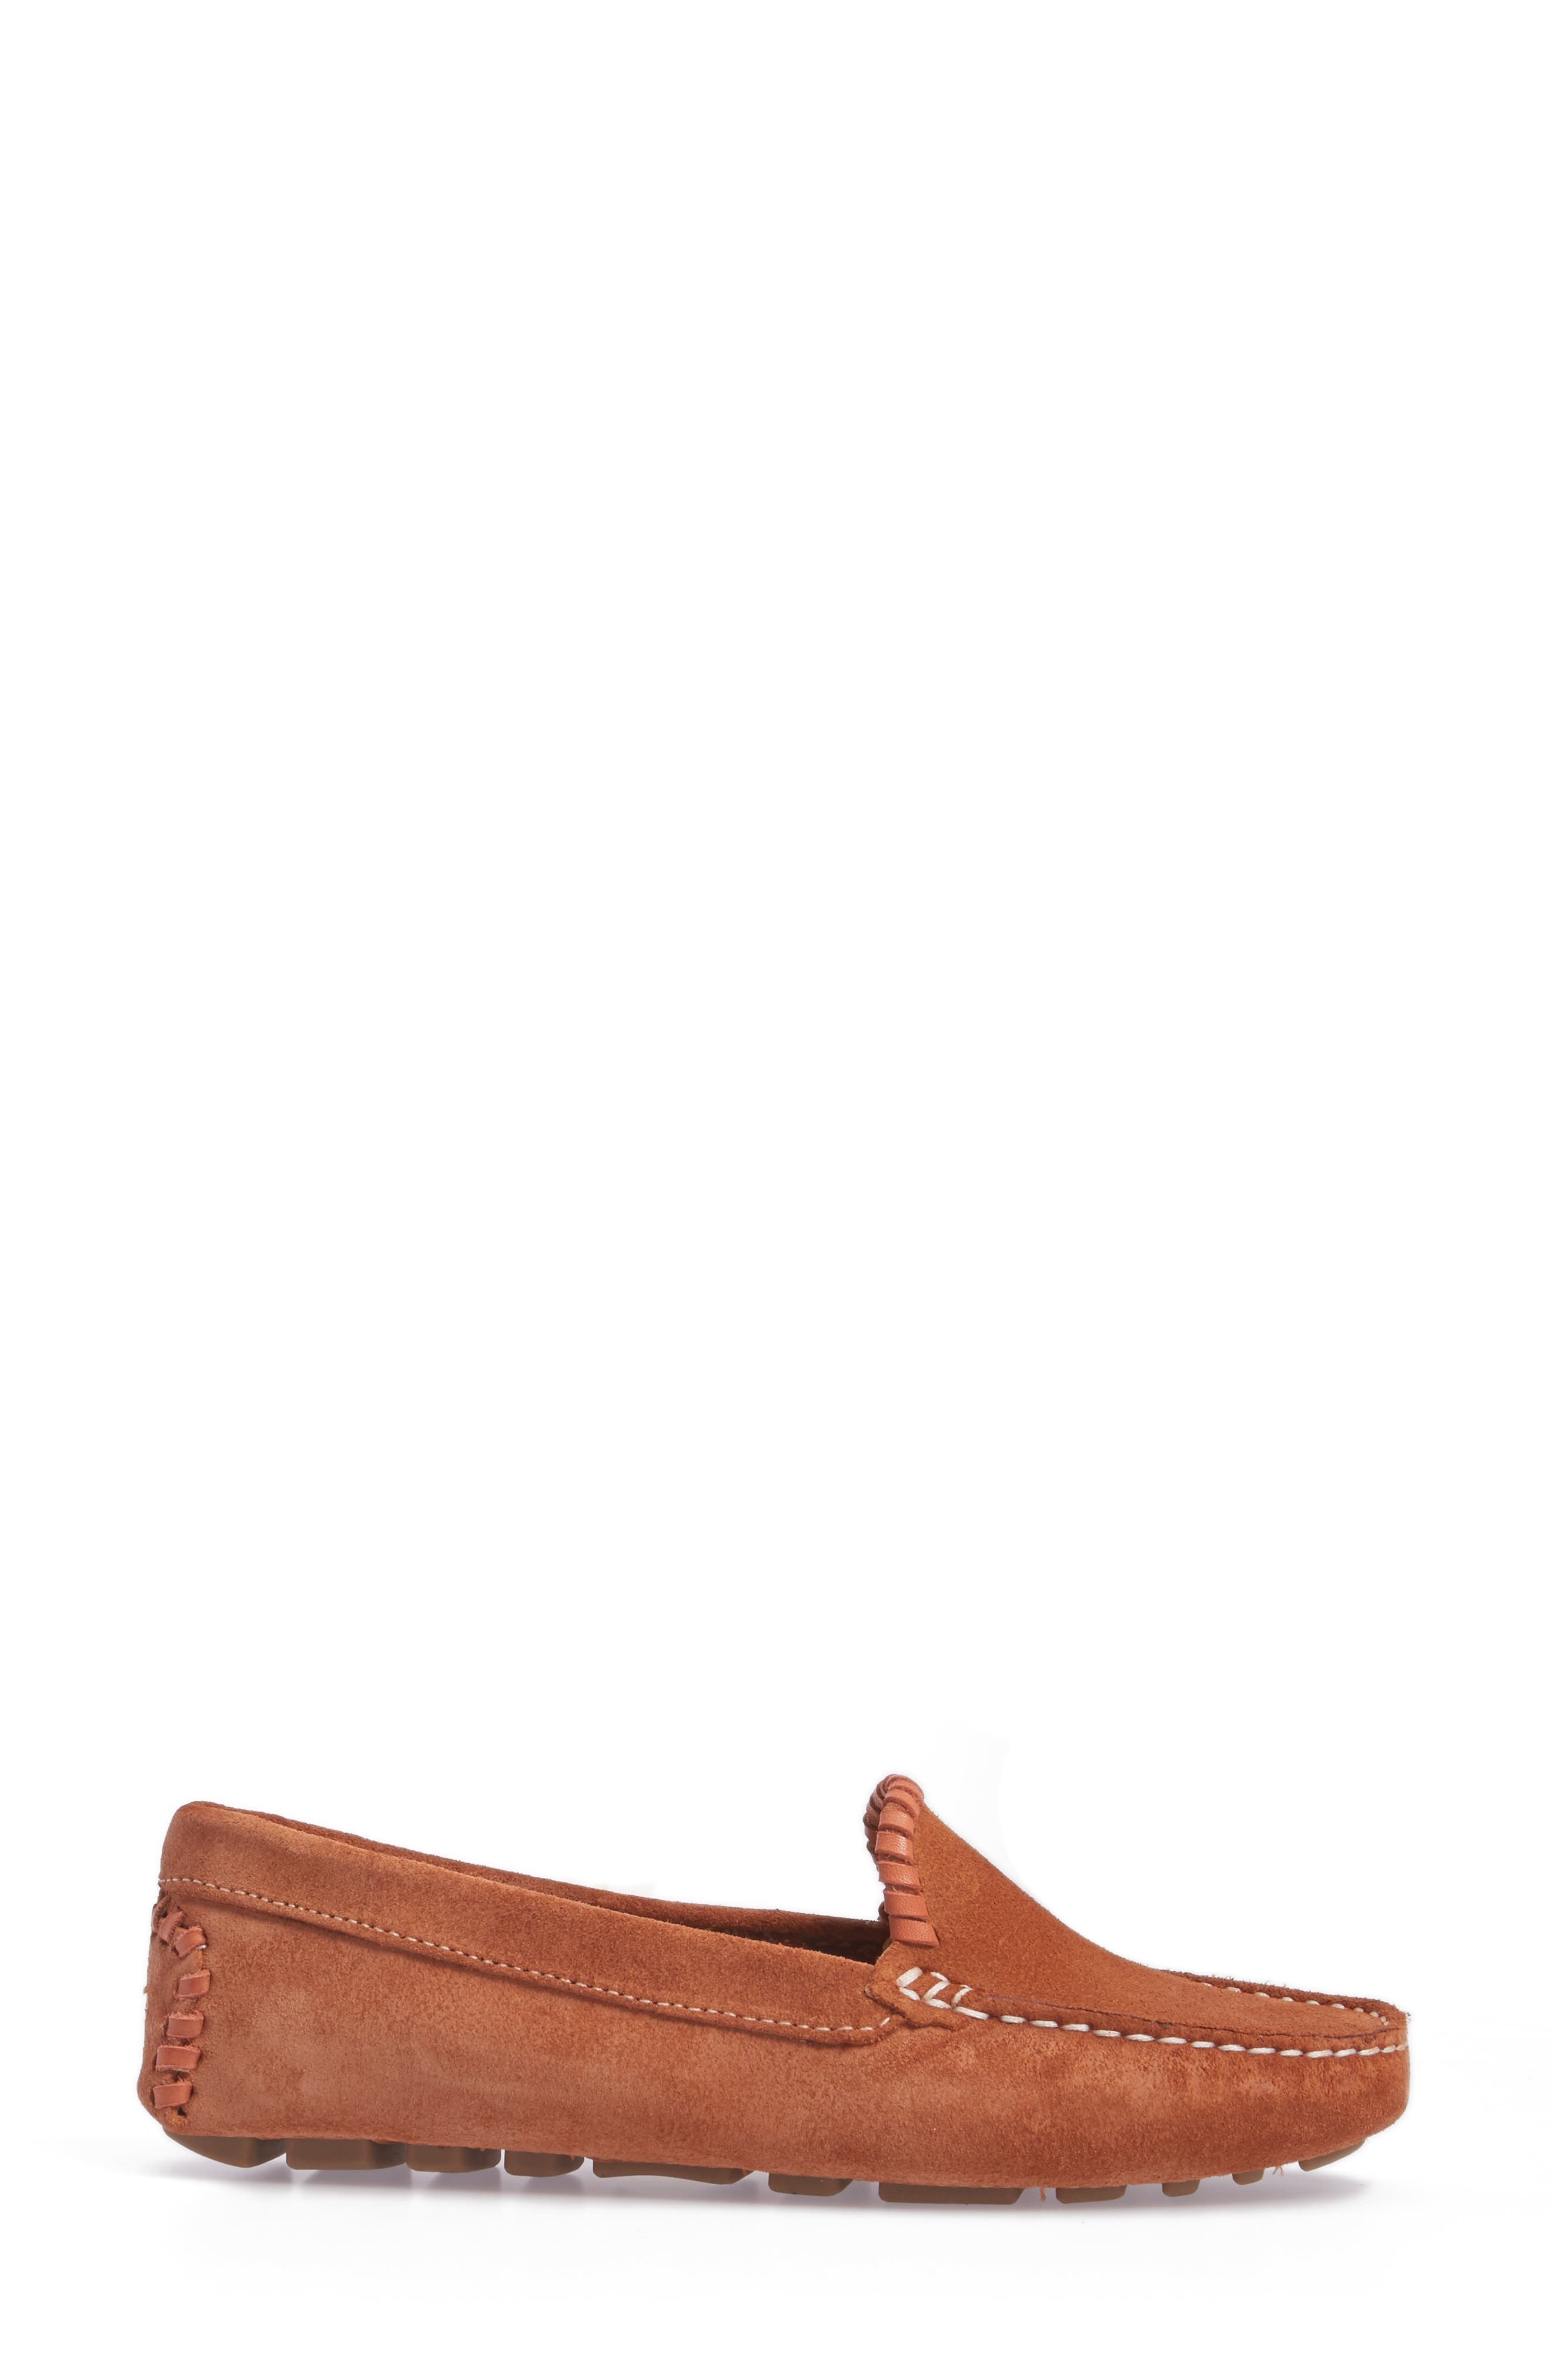 Taylor Driving Loafer,                             Alternate thumbnail 3, color,                             800